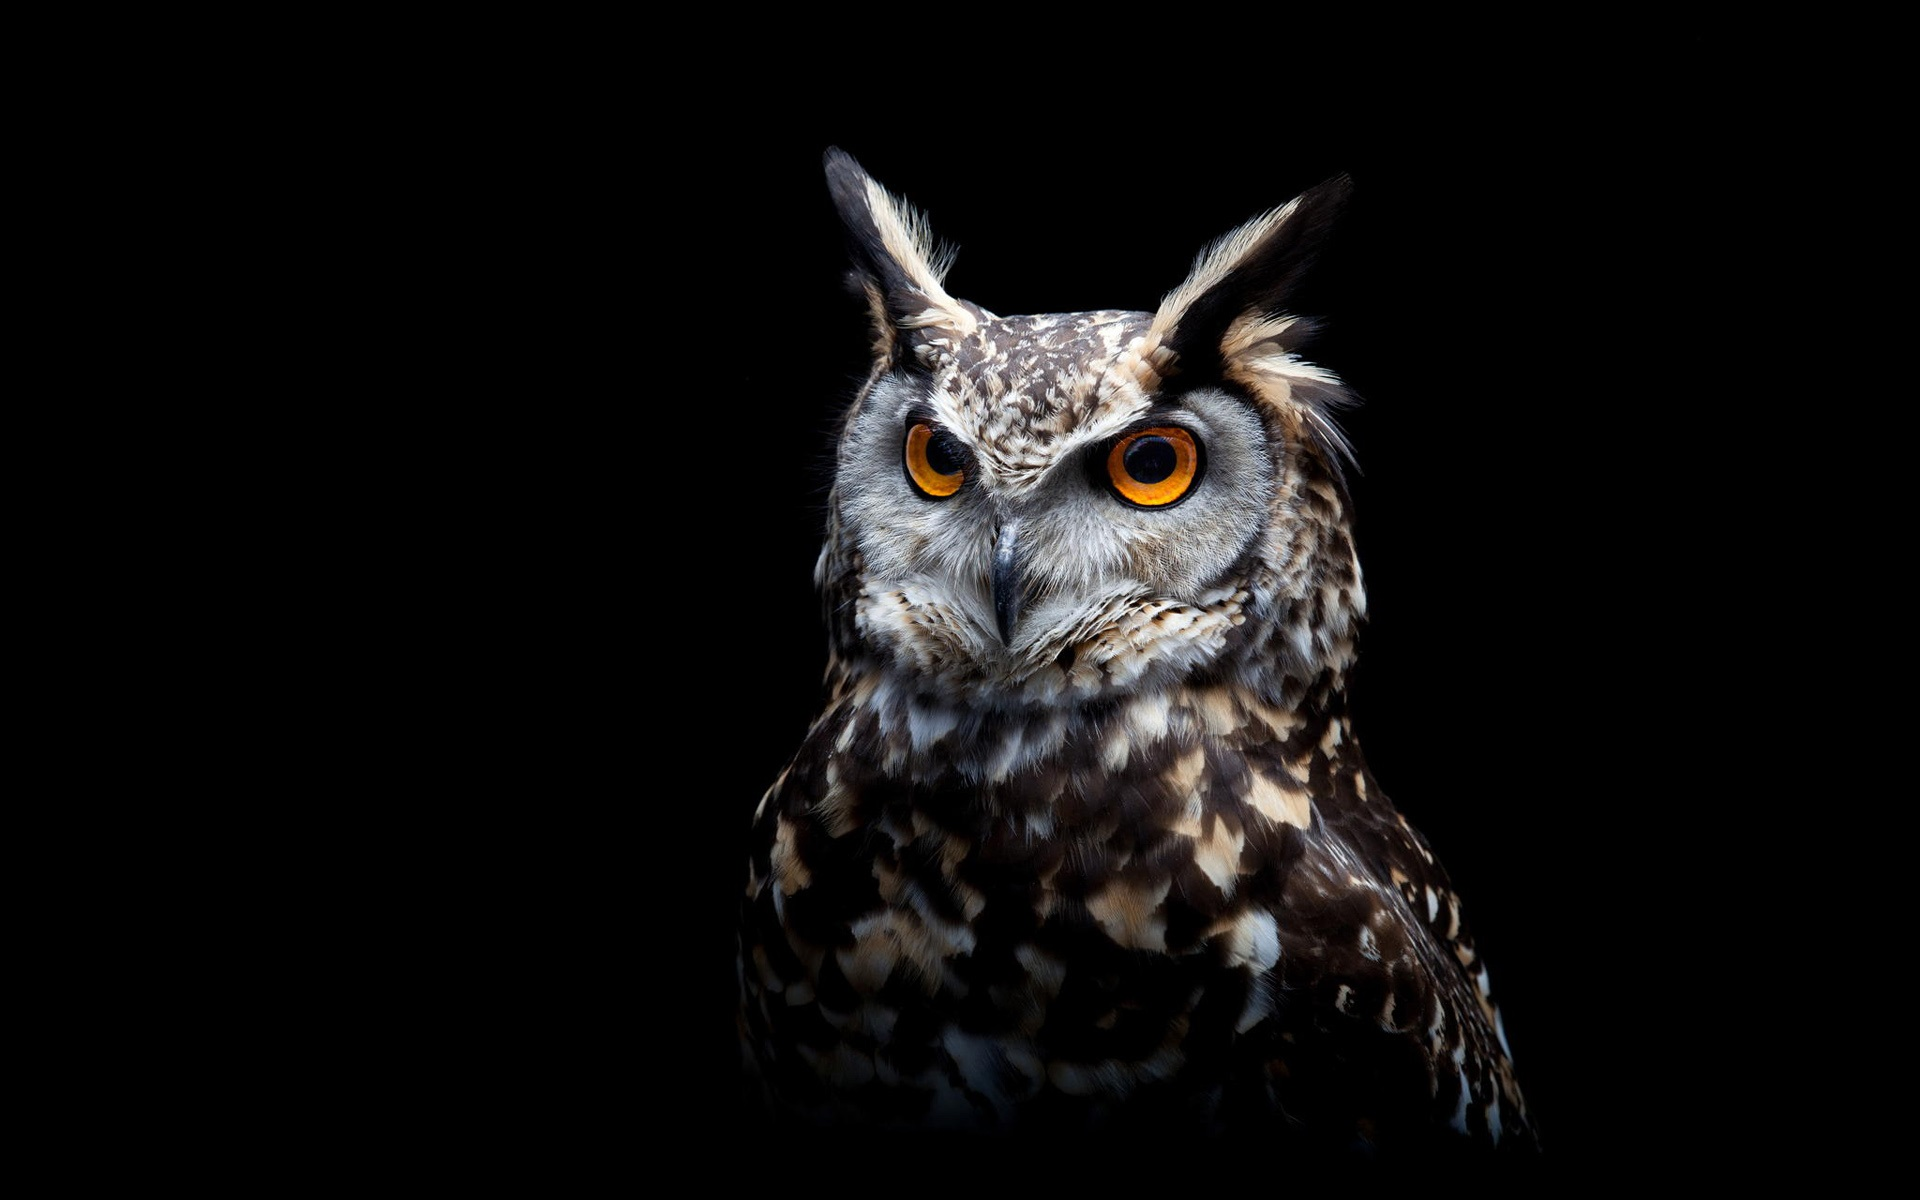 wallpaper owl, black background 1920x1200 hd picture, image